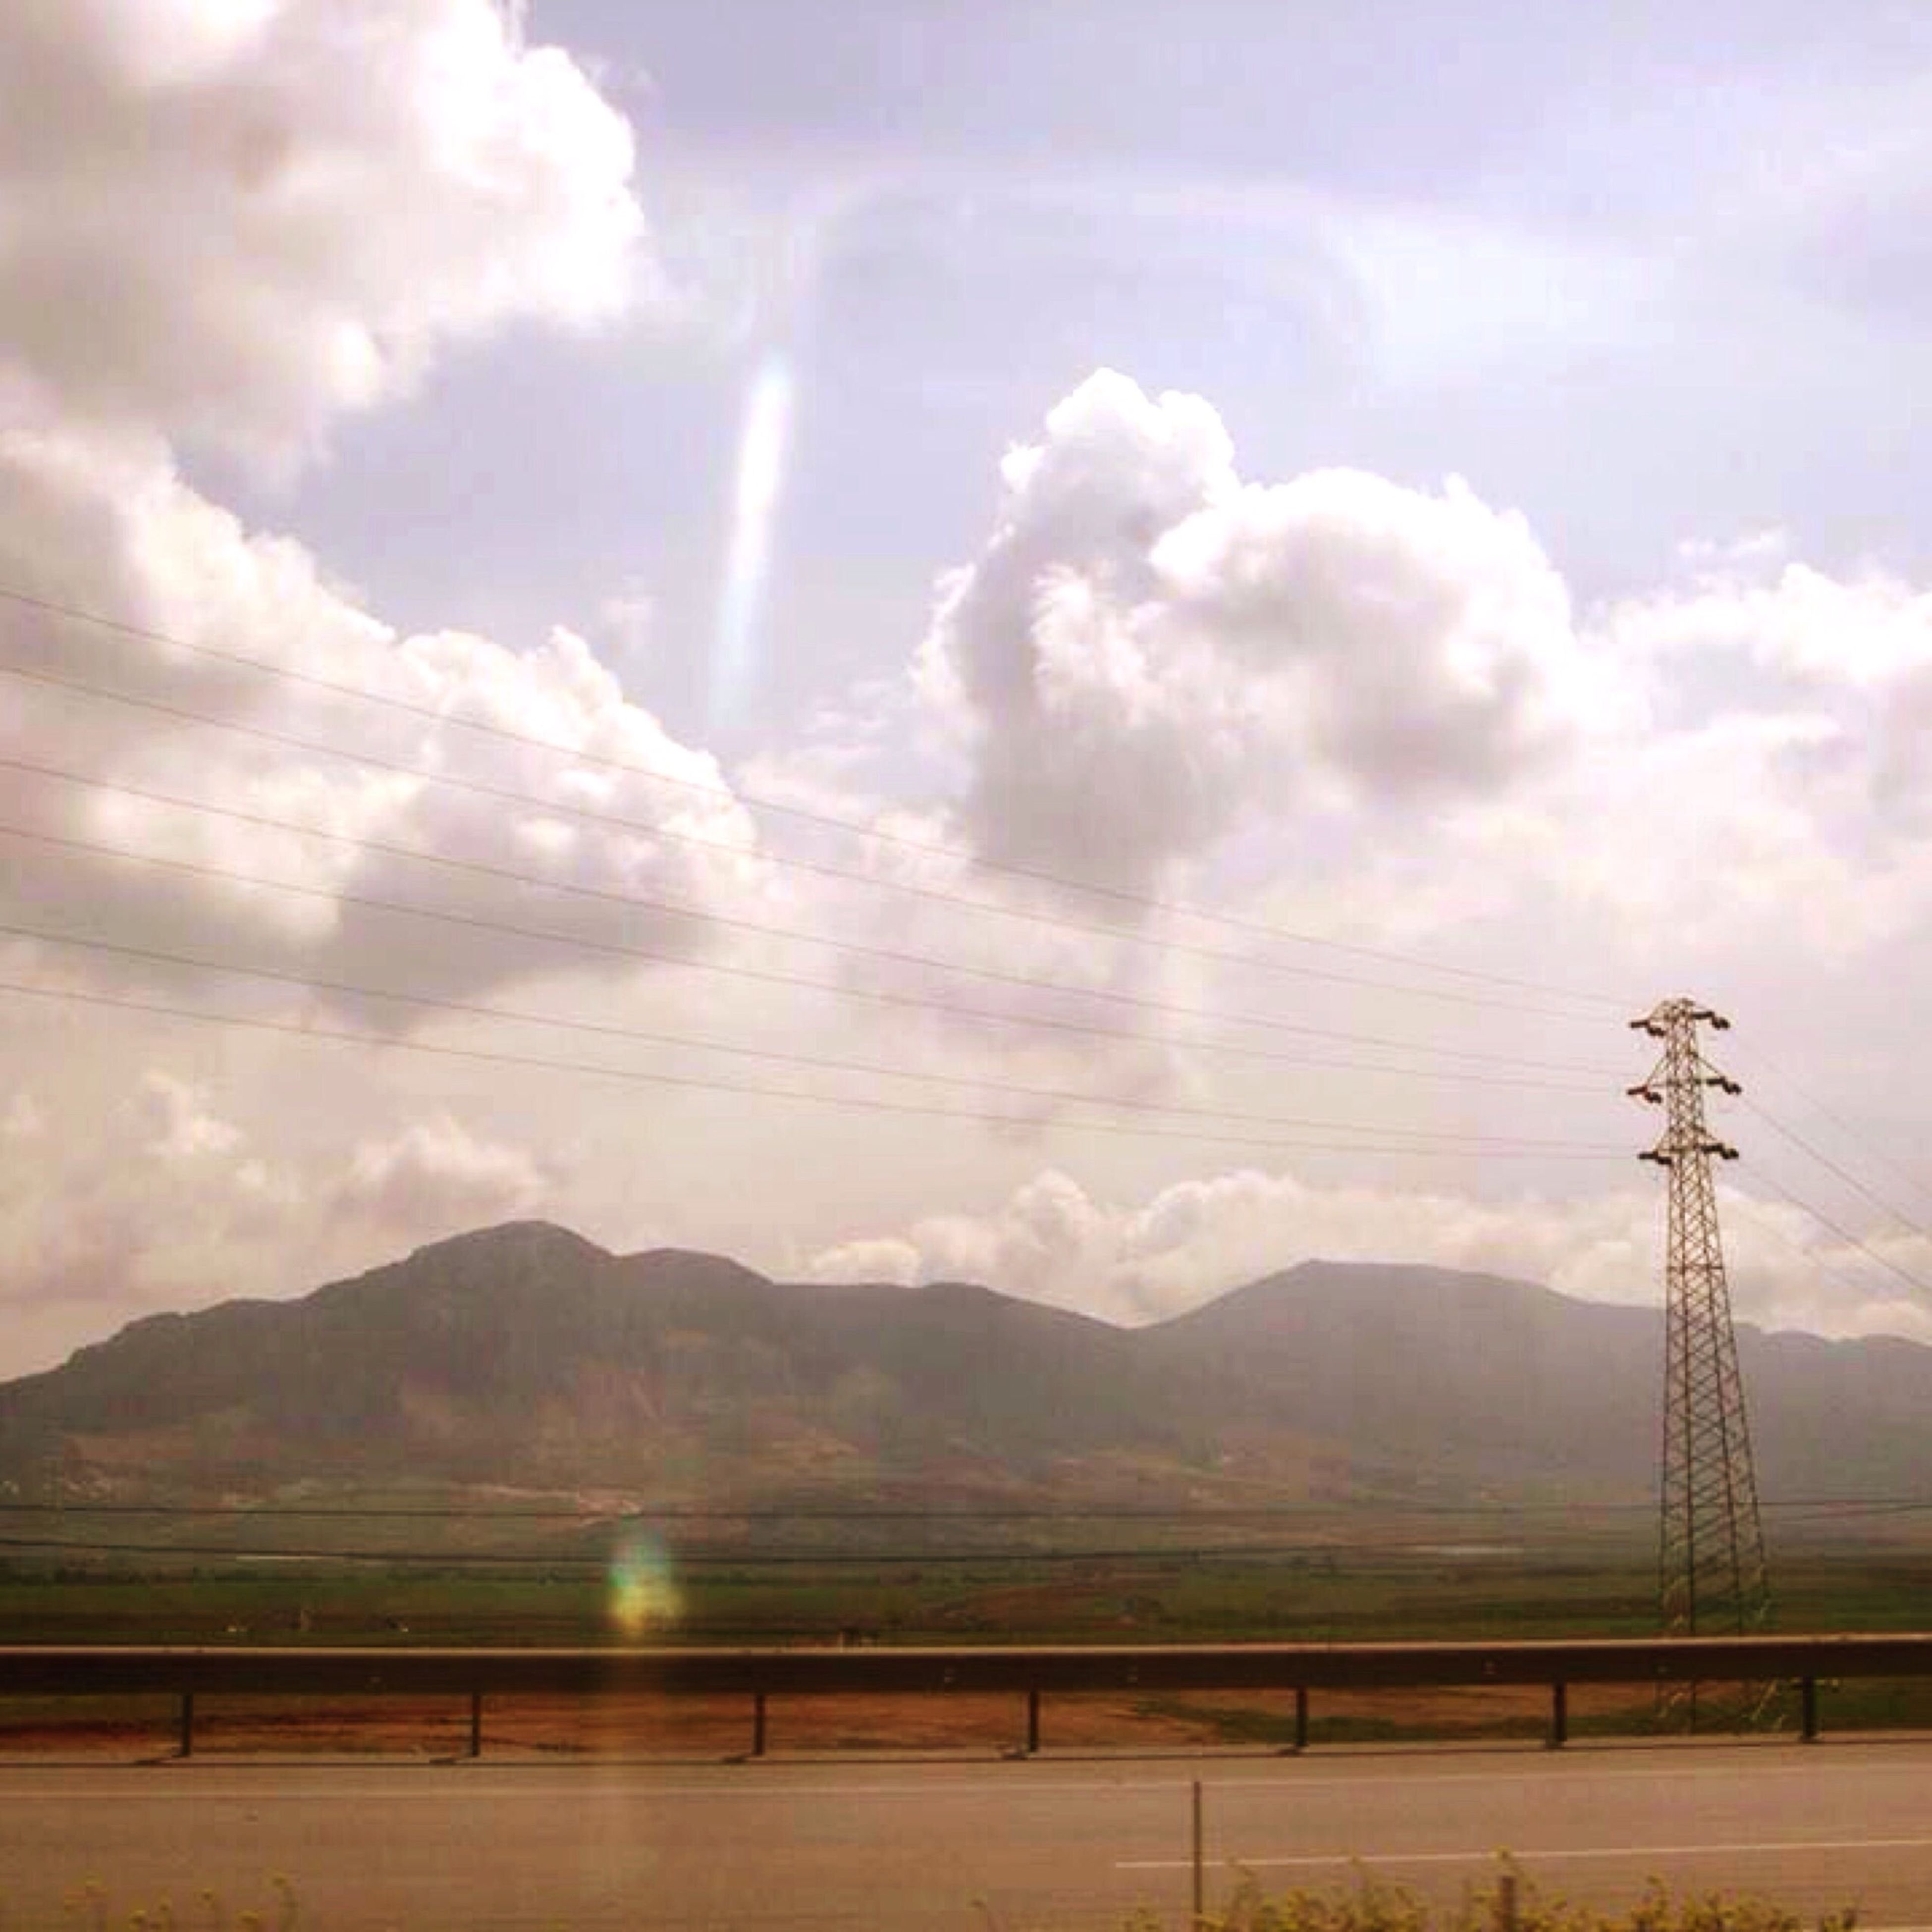 mountain, sky, mountain range, tranquil scene, tranquility, scenics, landscape, cloud - sky, beauty in nature, cloudy, nature, electricity pylon, cloud, non-urban scene, electricity, weather, idyllic, fence, connection, fuel and power generation